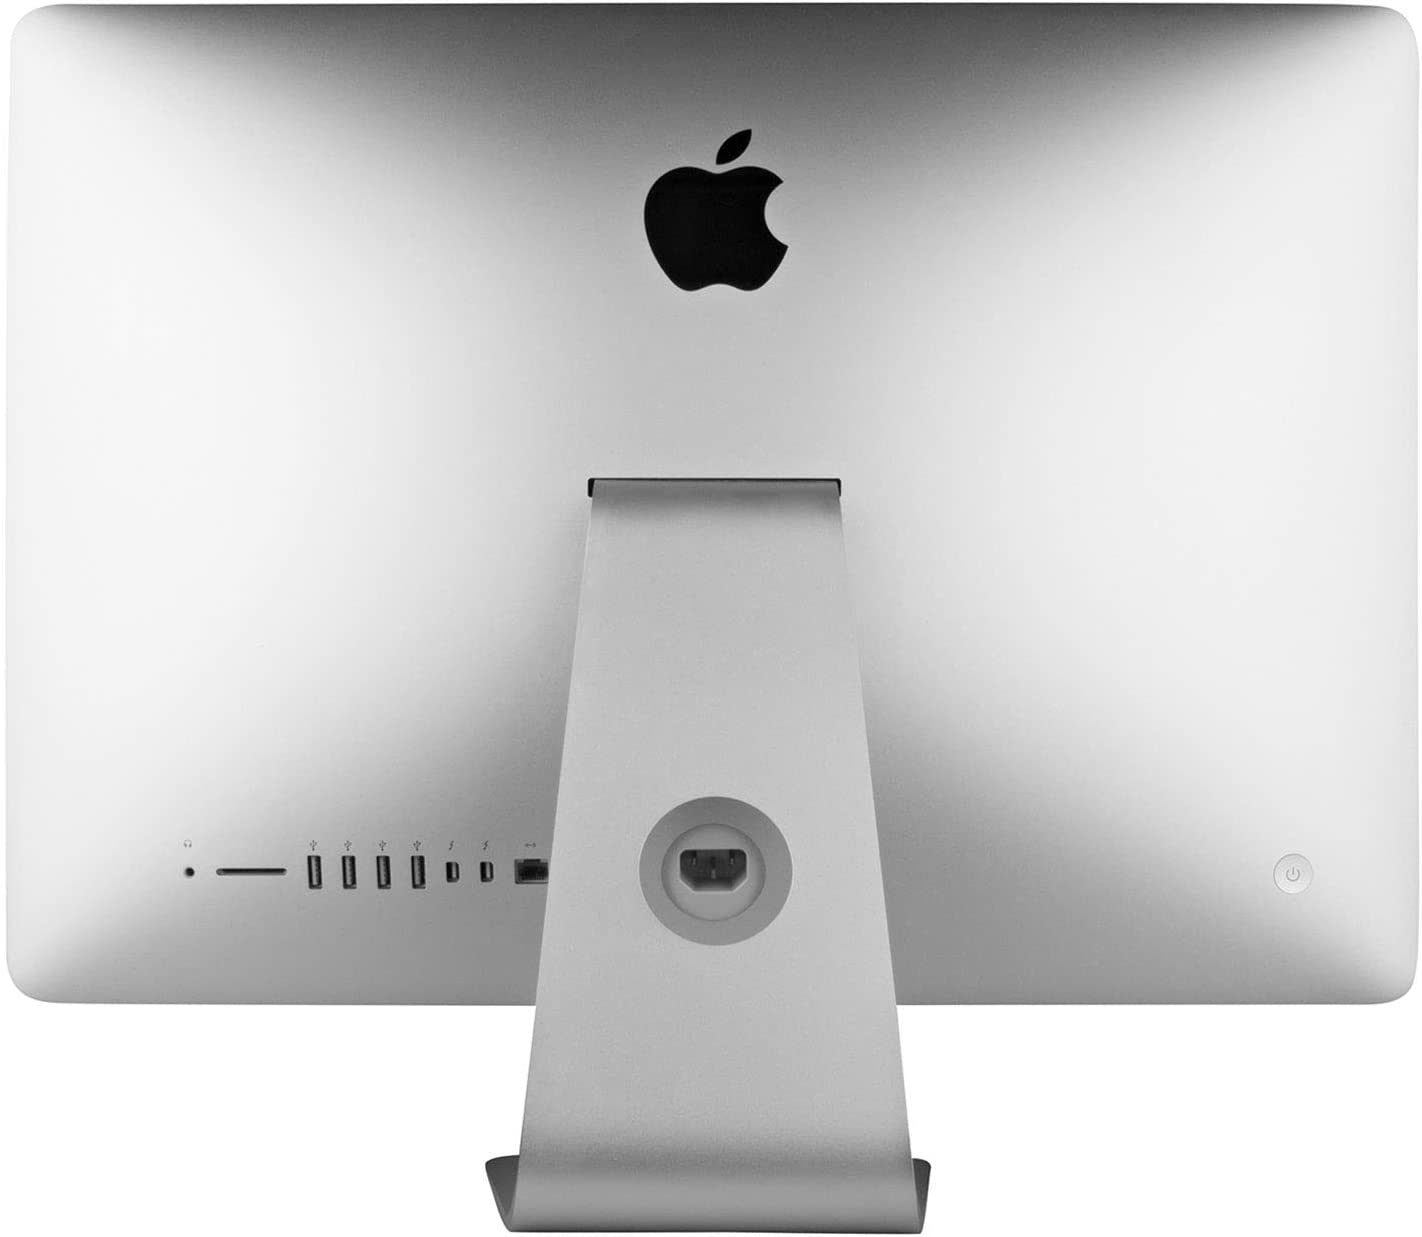 Amazon.com: Apple iMac ME086LL / A 21.5 pulgadas All In One ...